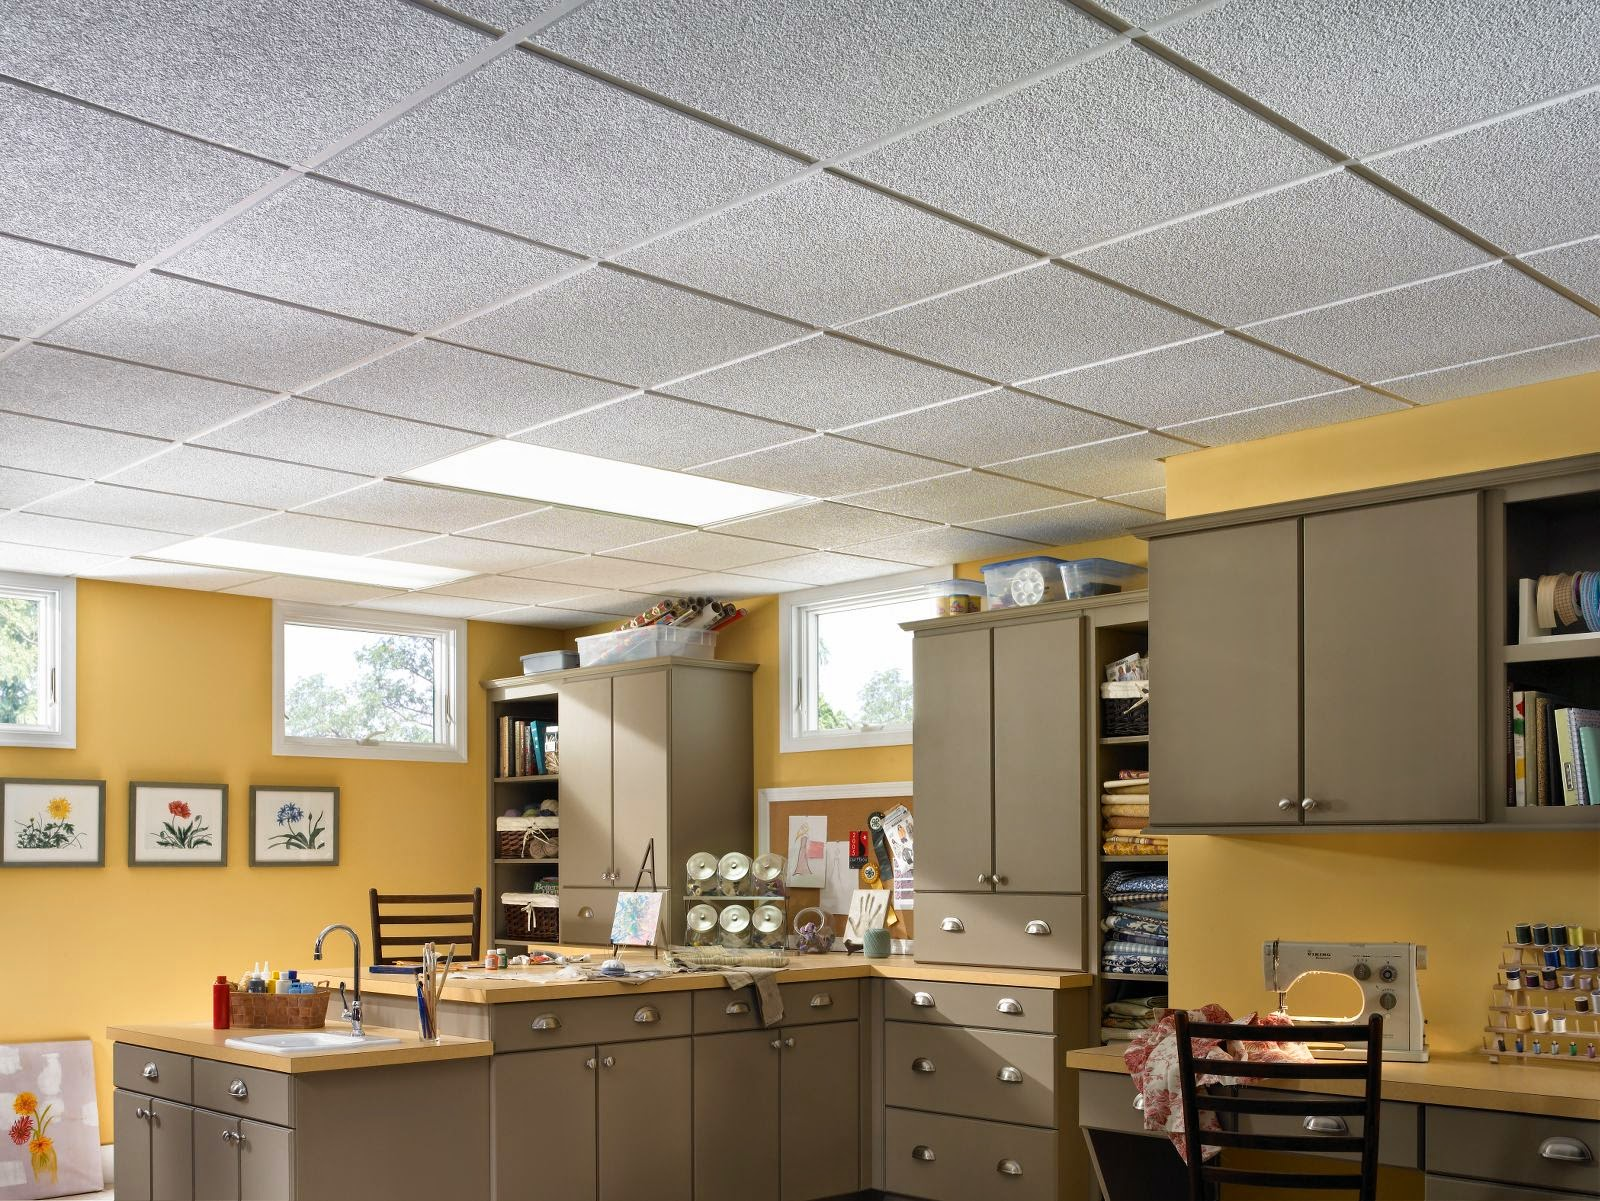 Basement Ceilings Then and Now